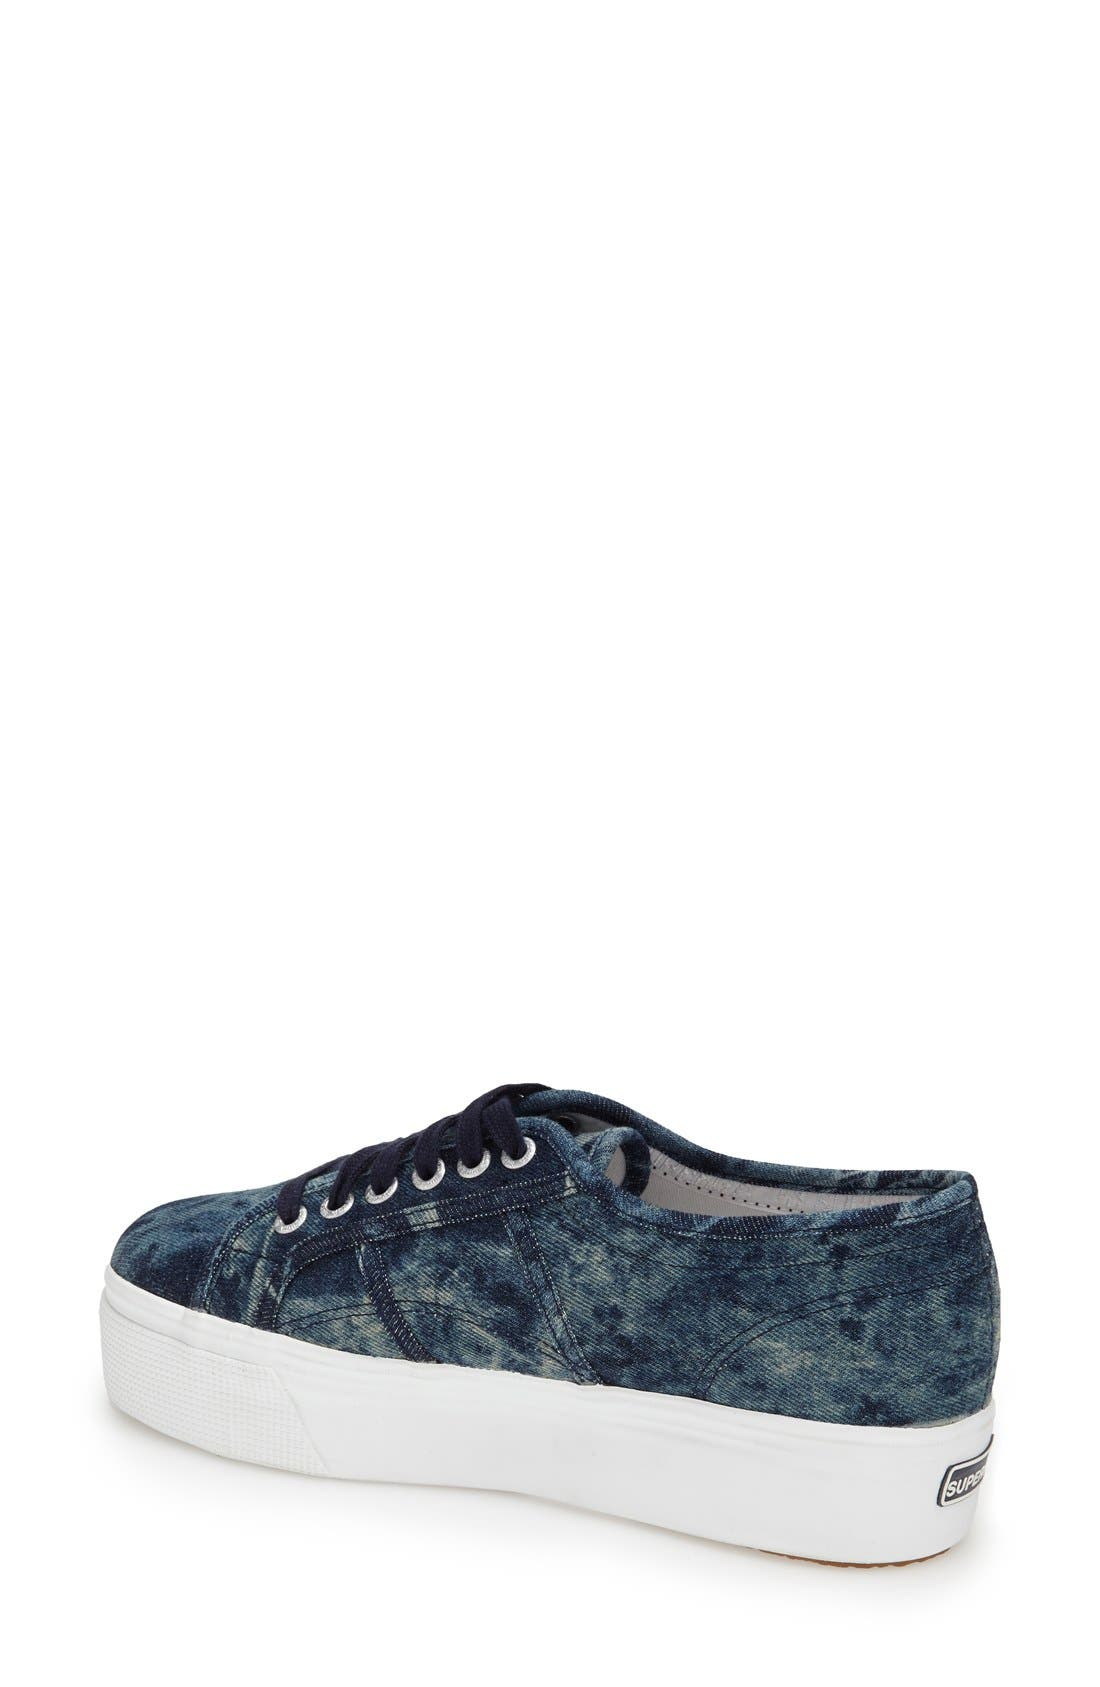 Alternate Image 2  - Superga Tie Dye Platform Sneaker (Women)